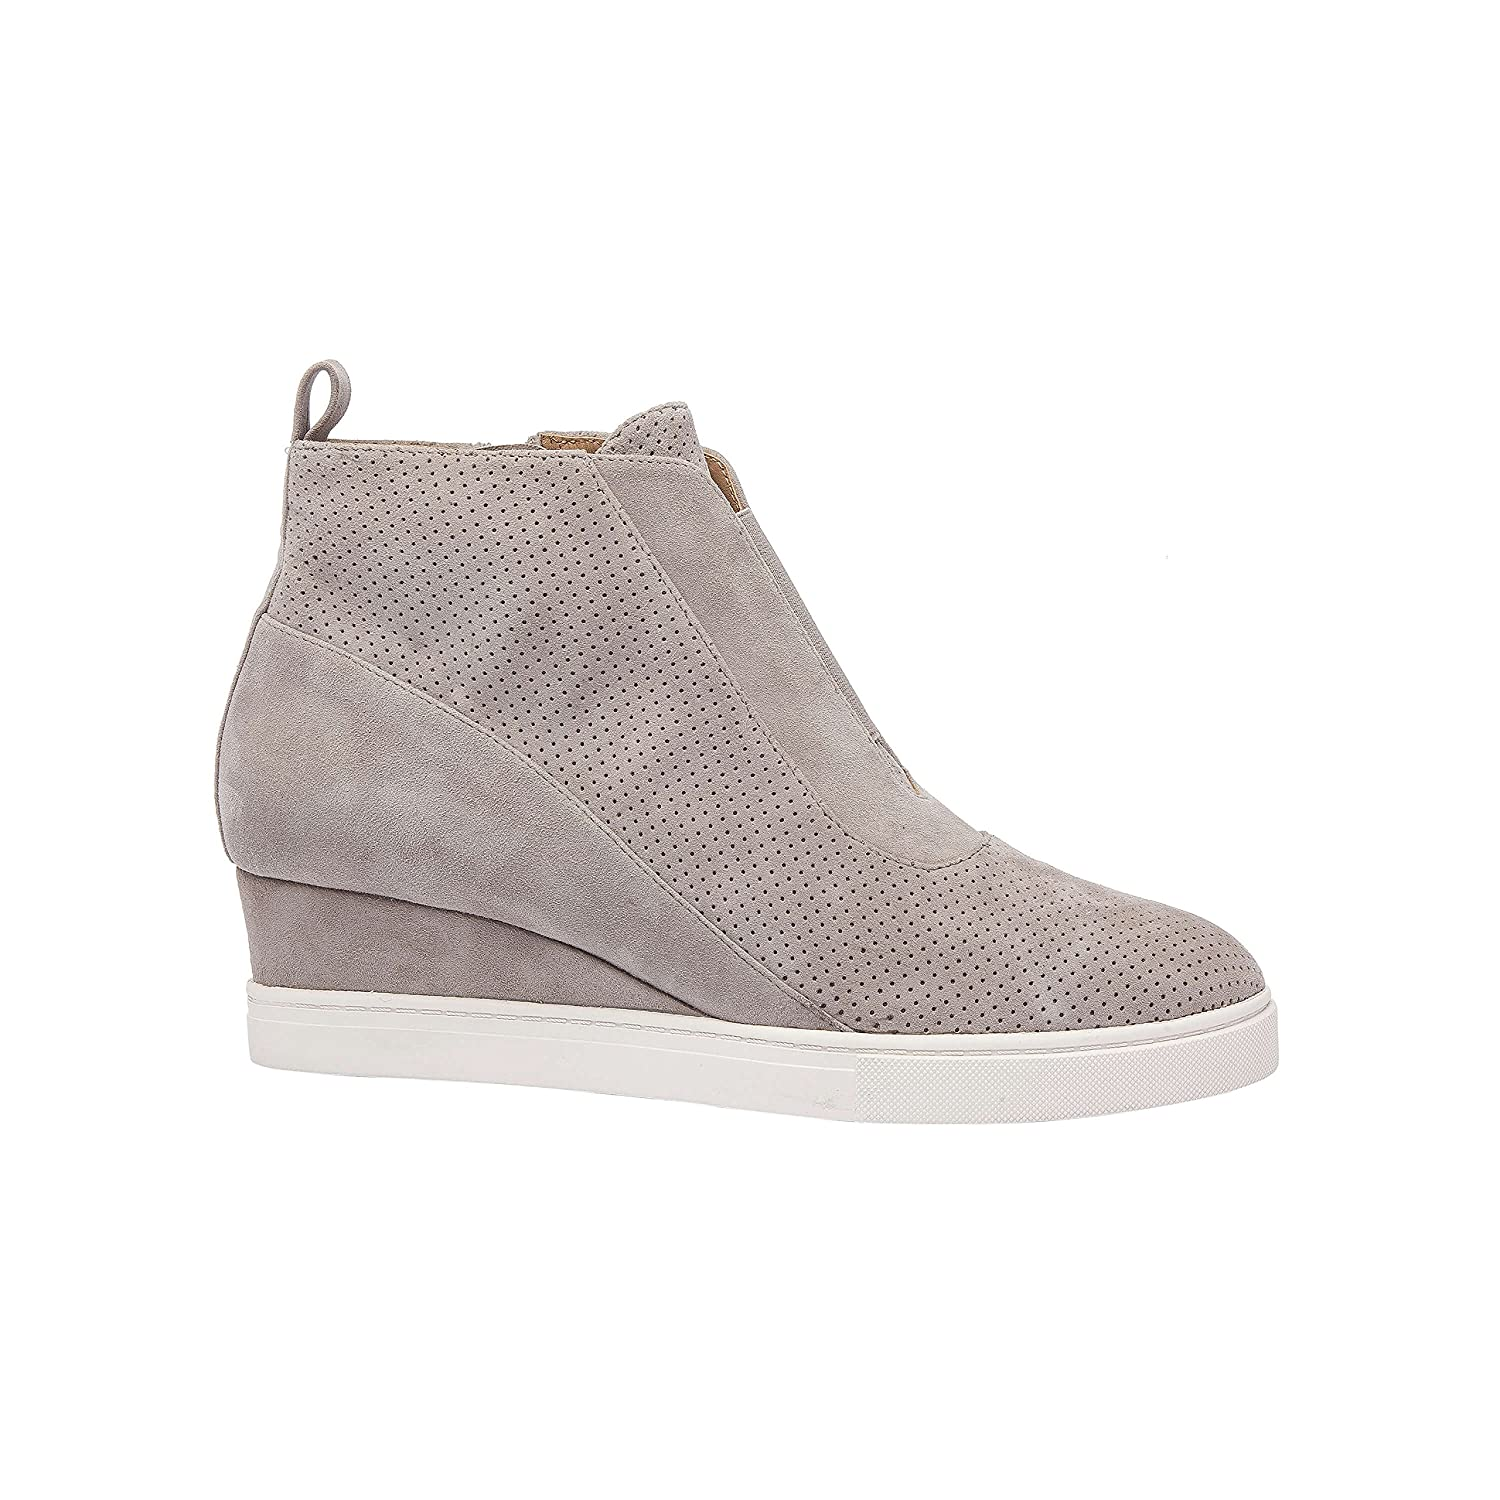 Linea Paolo Anna   Low Heel Designer Platform Wedge Sneaker Bootie Comfortable Fashion Ankle Boot (New Fall) B07F6WPRFP 5.5 M US Rock Perforated Suede